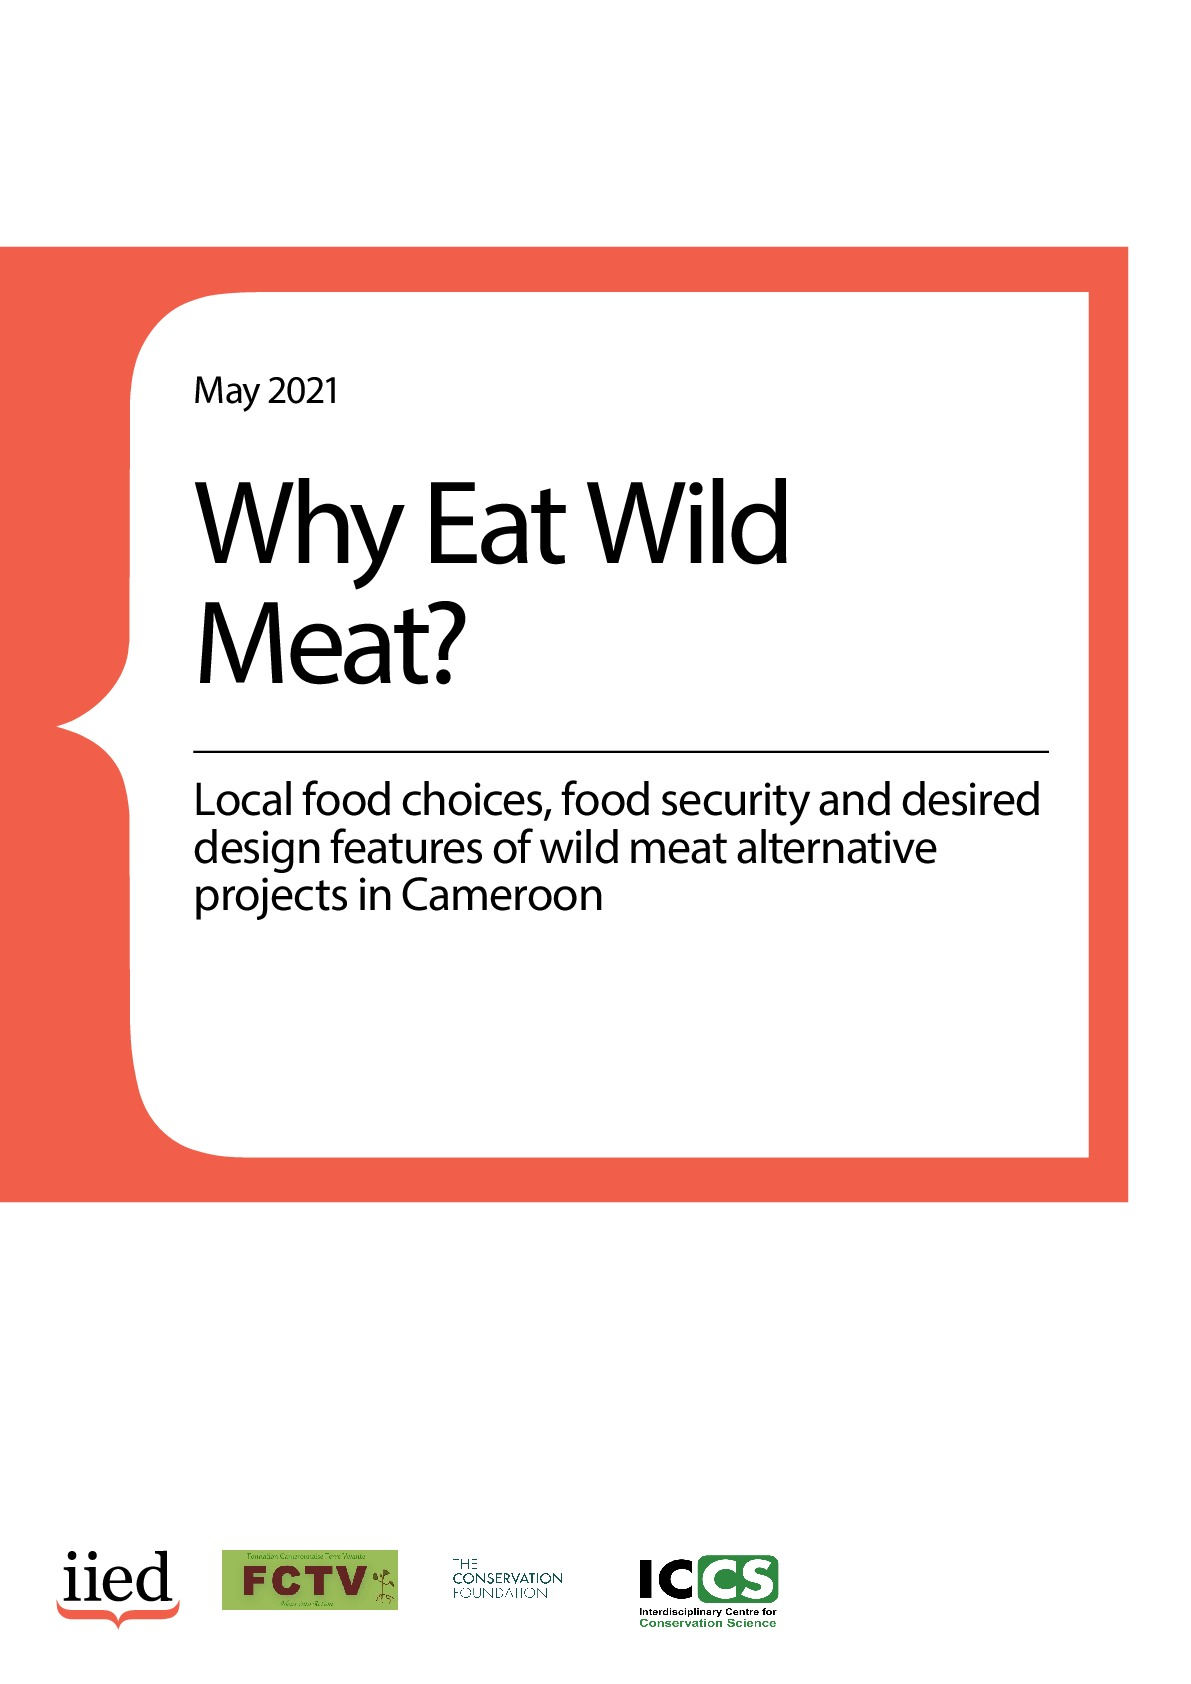 Why eat wild meat? Local food choices, food security and desired design features of wild meat alternative projects in Cameroon